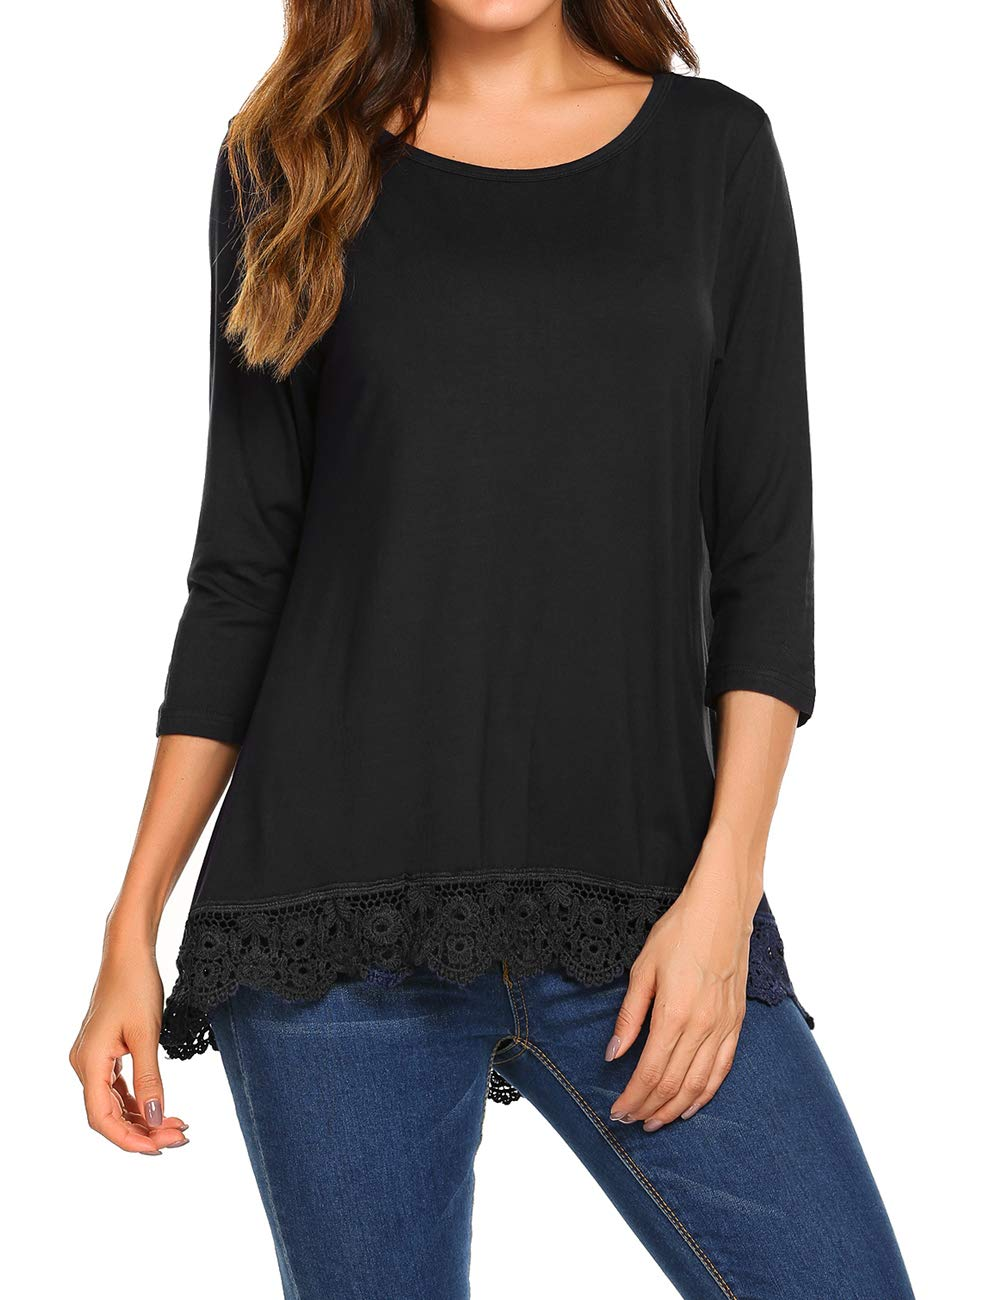 Women's Loose Casual Half Sleeve Jersey Tunic Blouse Top Tee Black,S